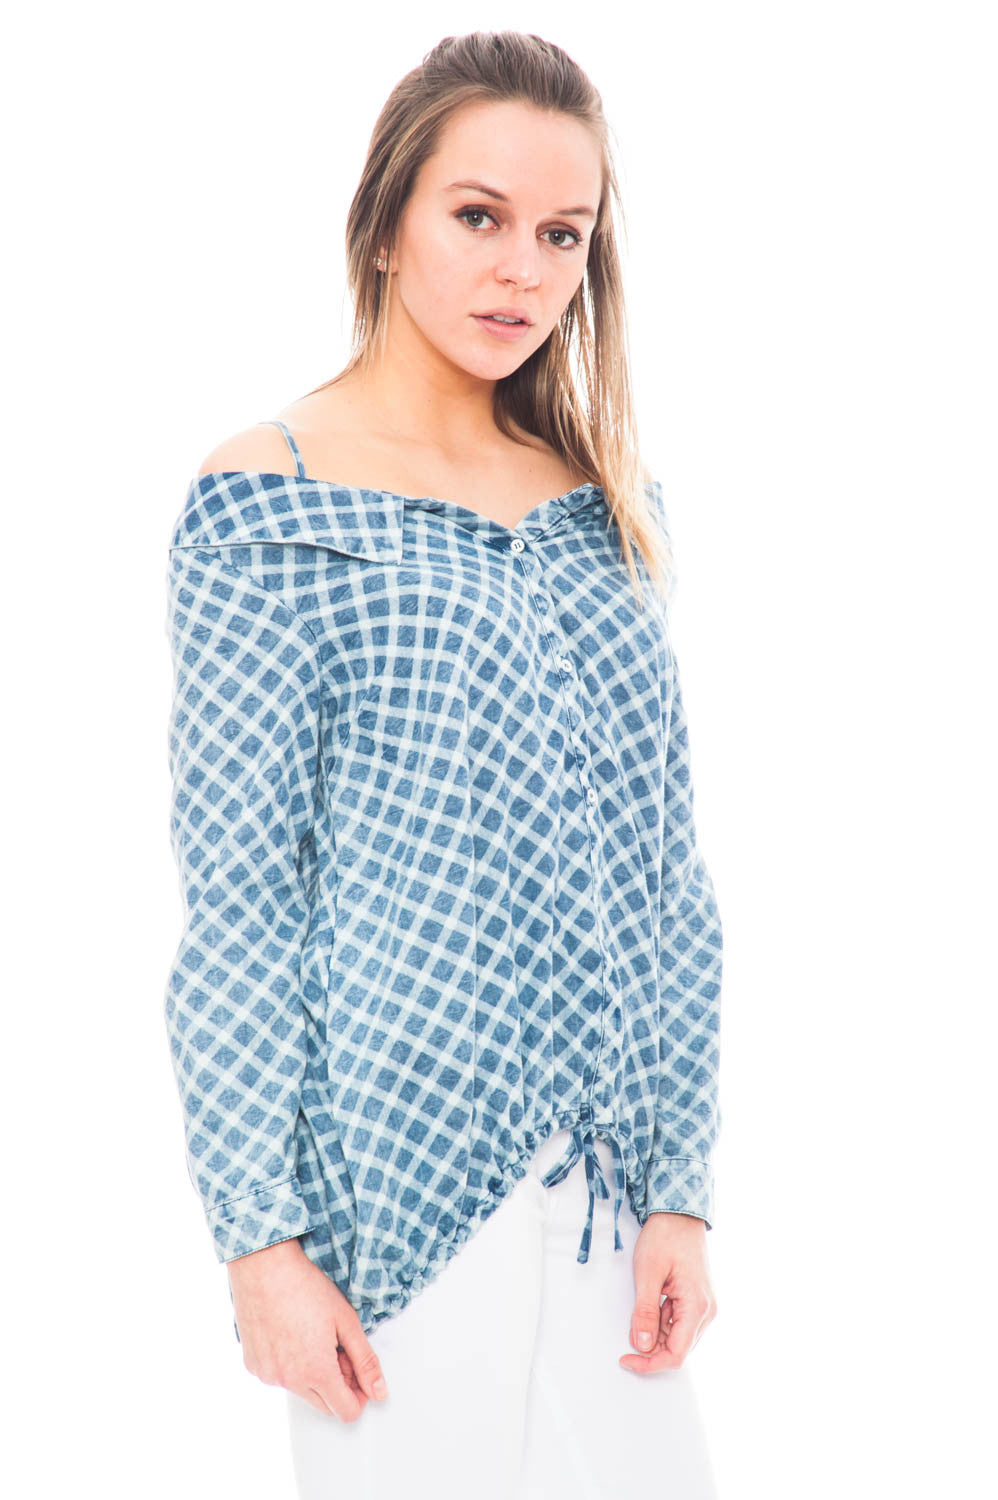 Shirt - Checkered Denim Off Shoulder Top with Collar